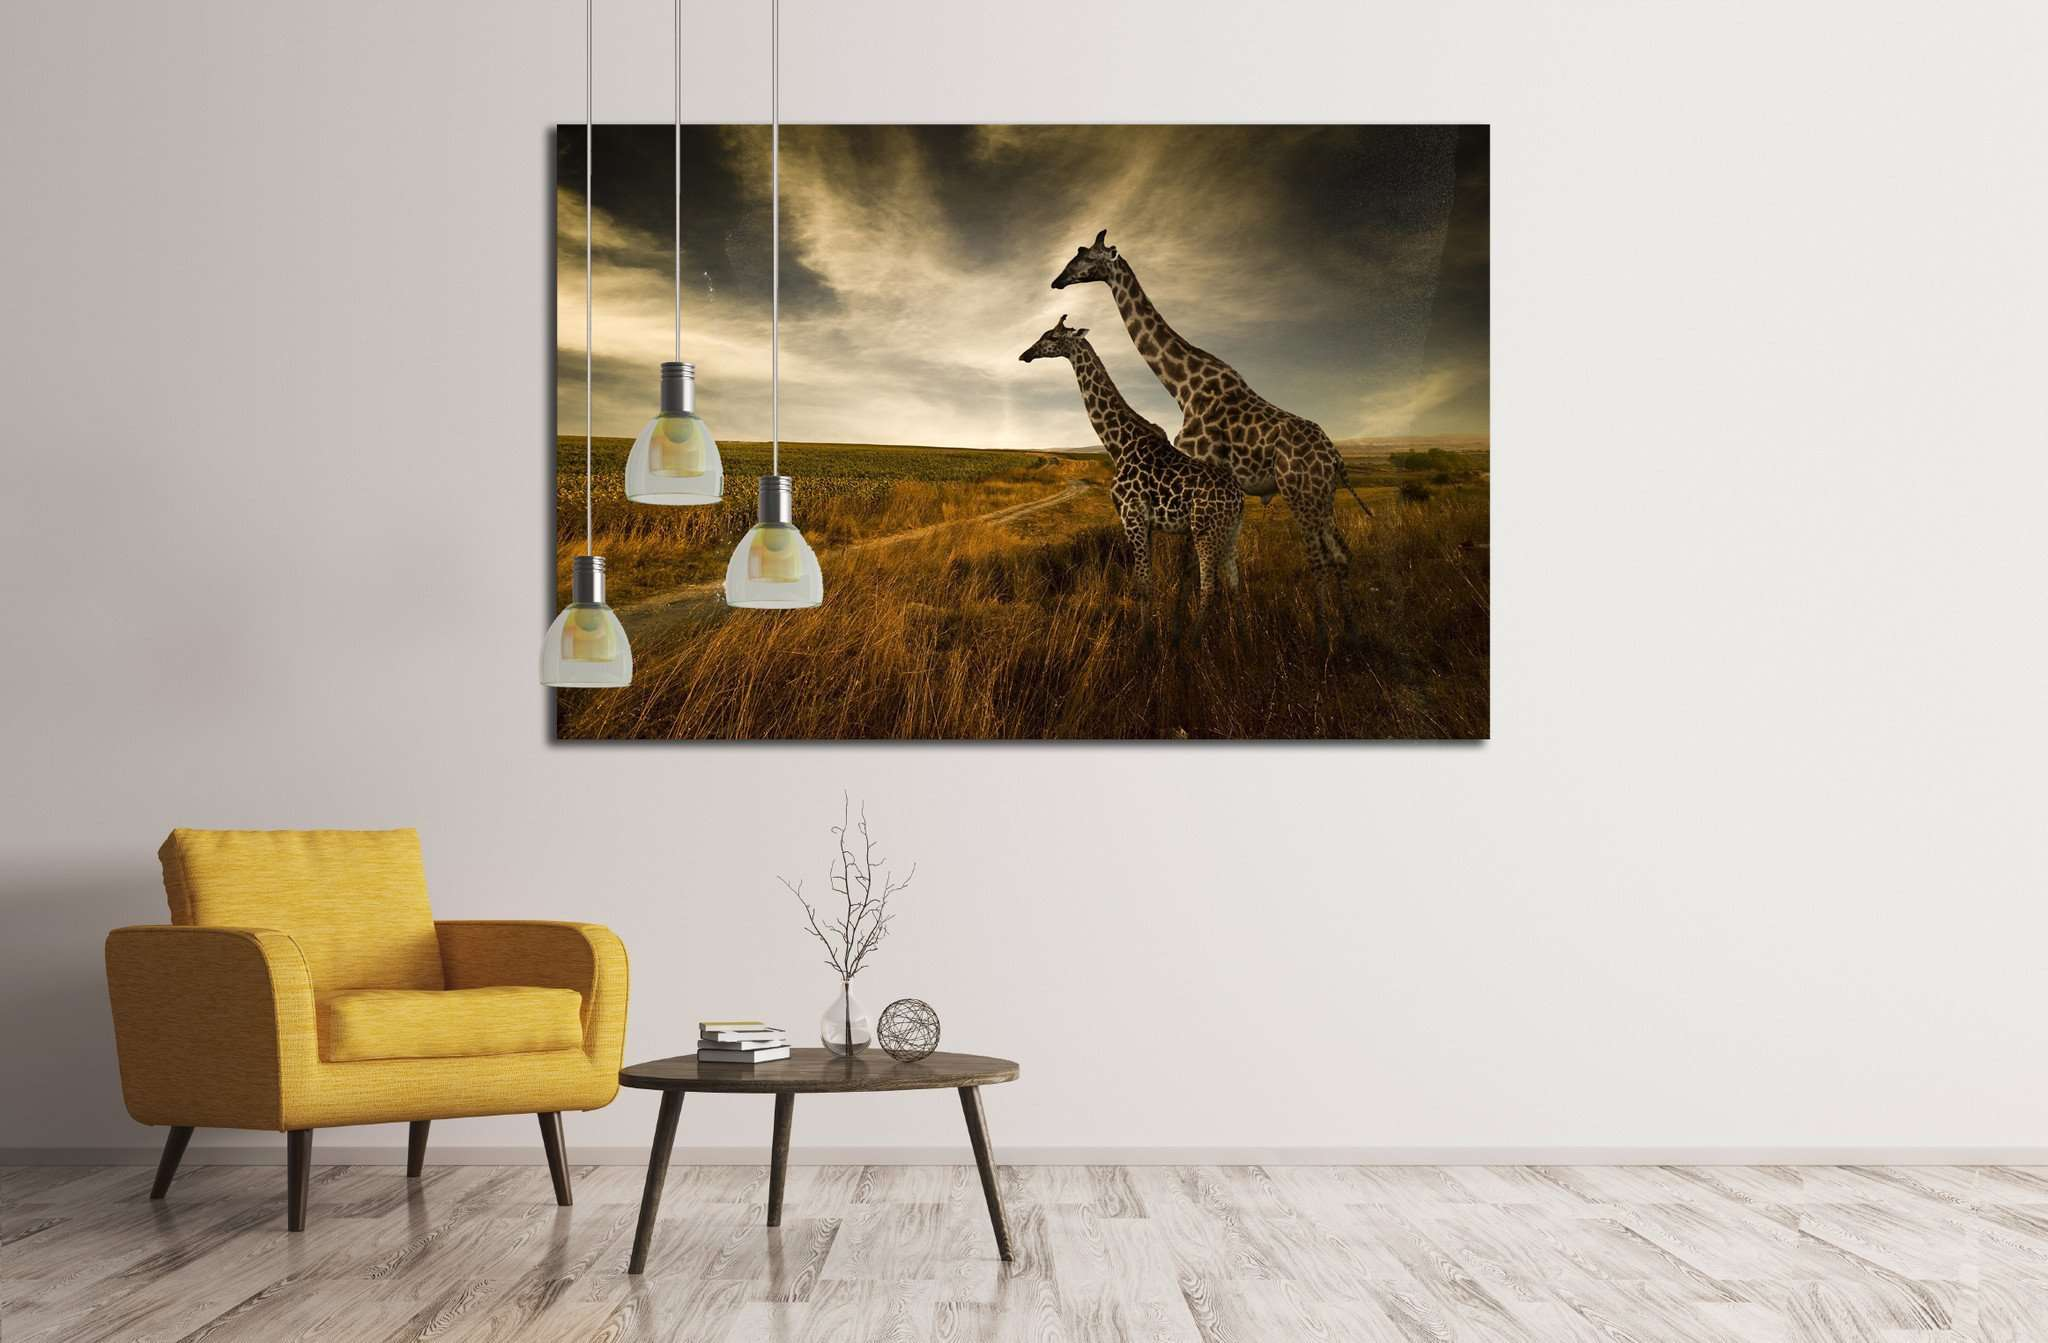 Giraffes and The Landscape №1836 Ready to Hang Canvas Print